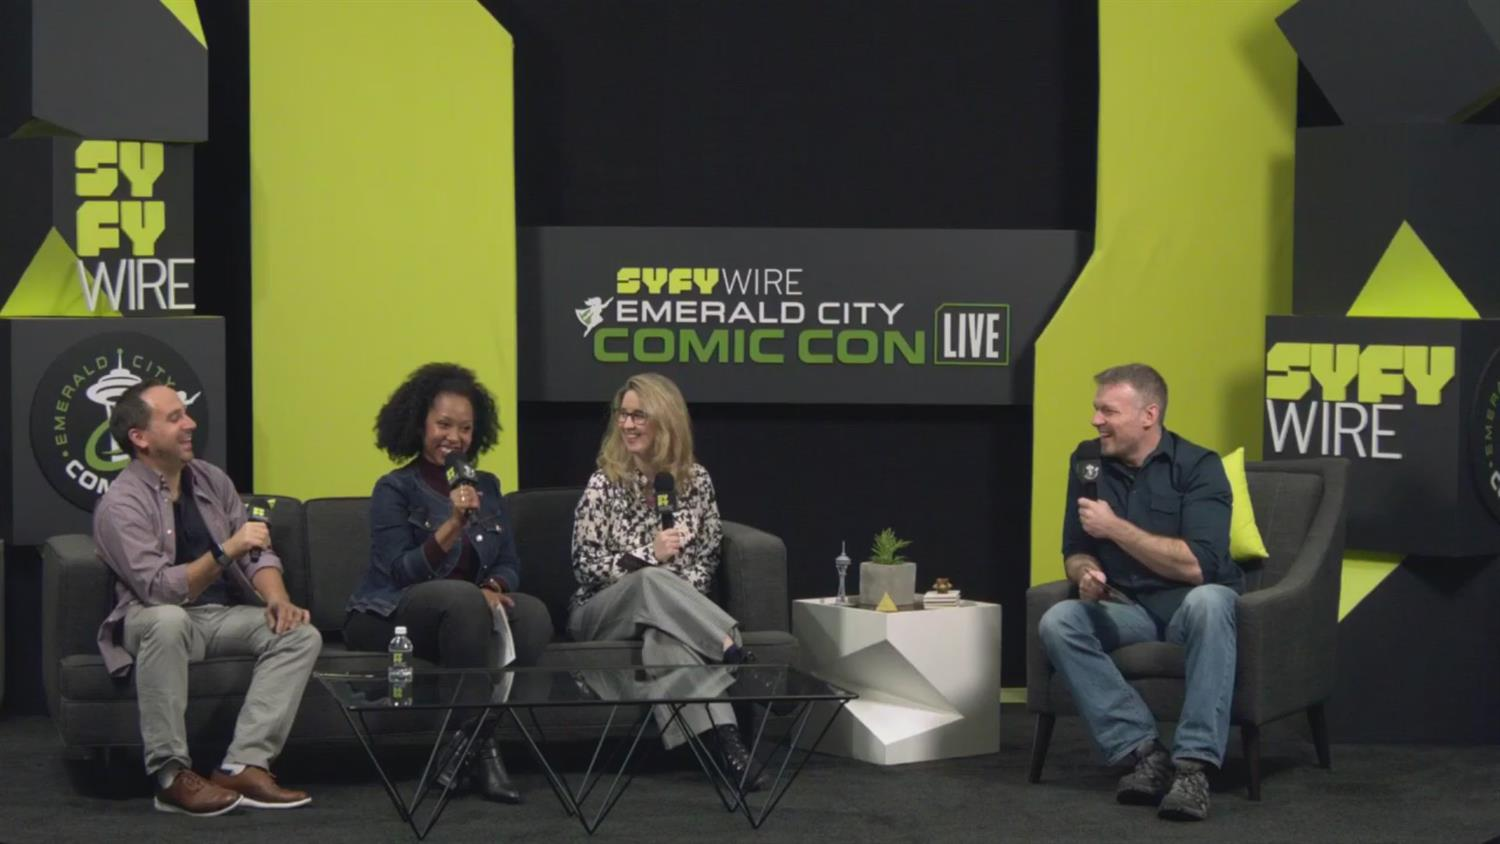 SYFY WIRE Thursday Morning Con Kick-Off (ECCC 2019)